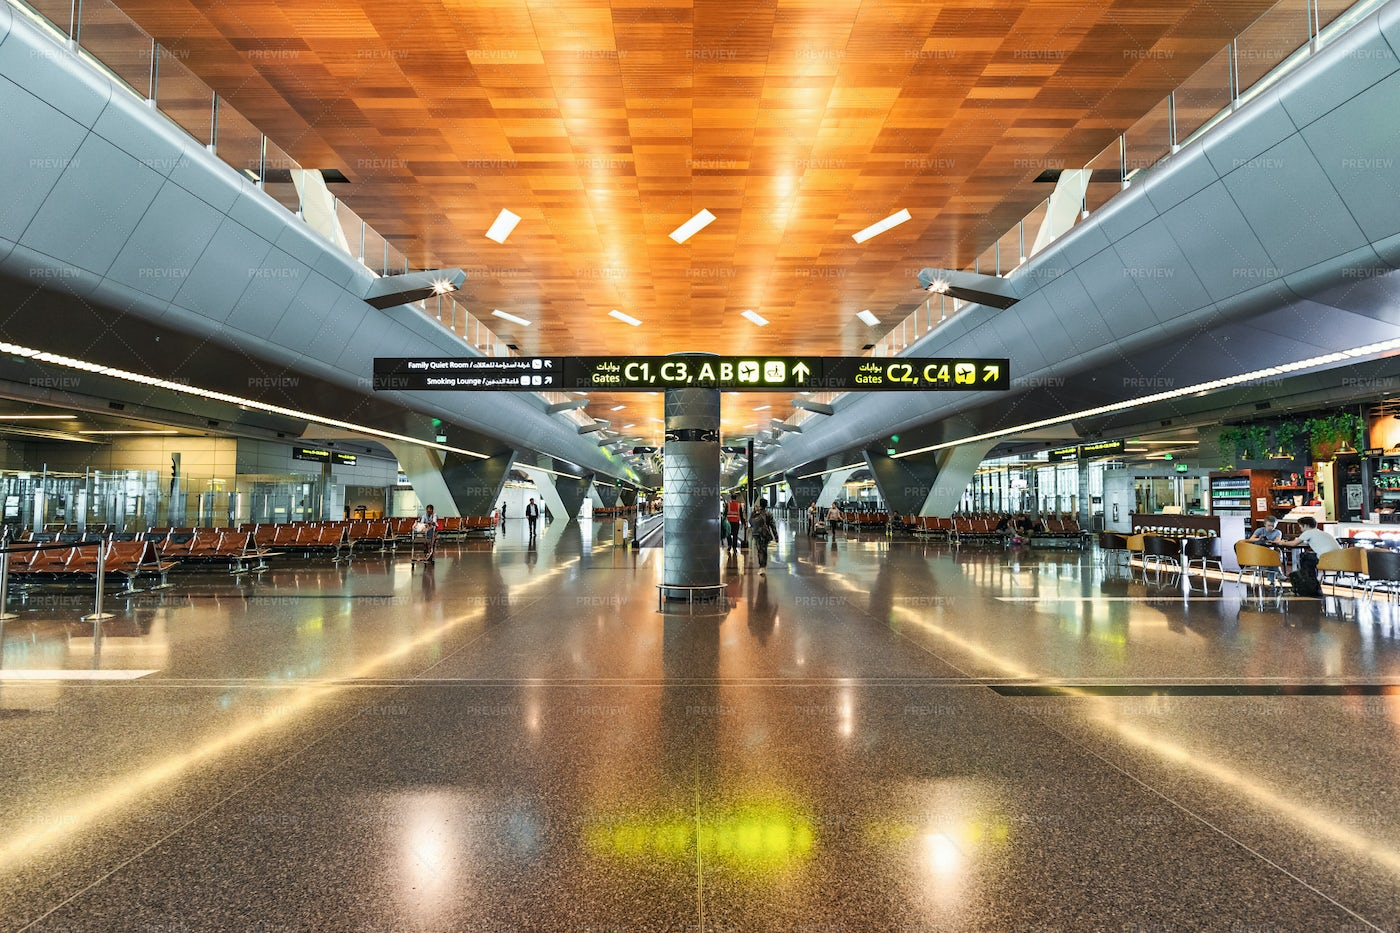 Indoors In Hamad Airport In Doha: Stock Photos